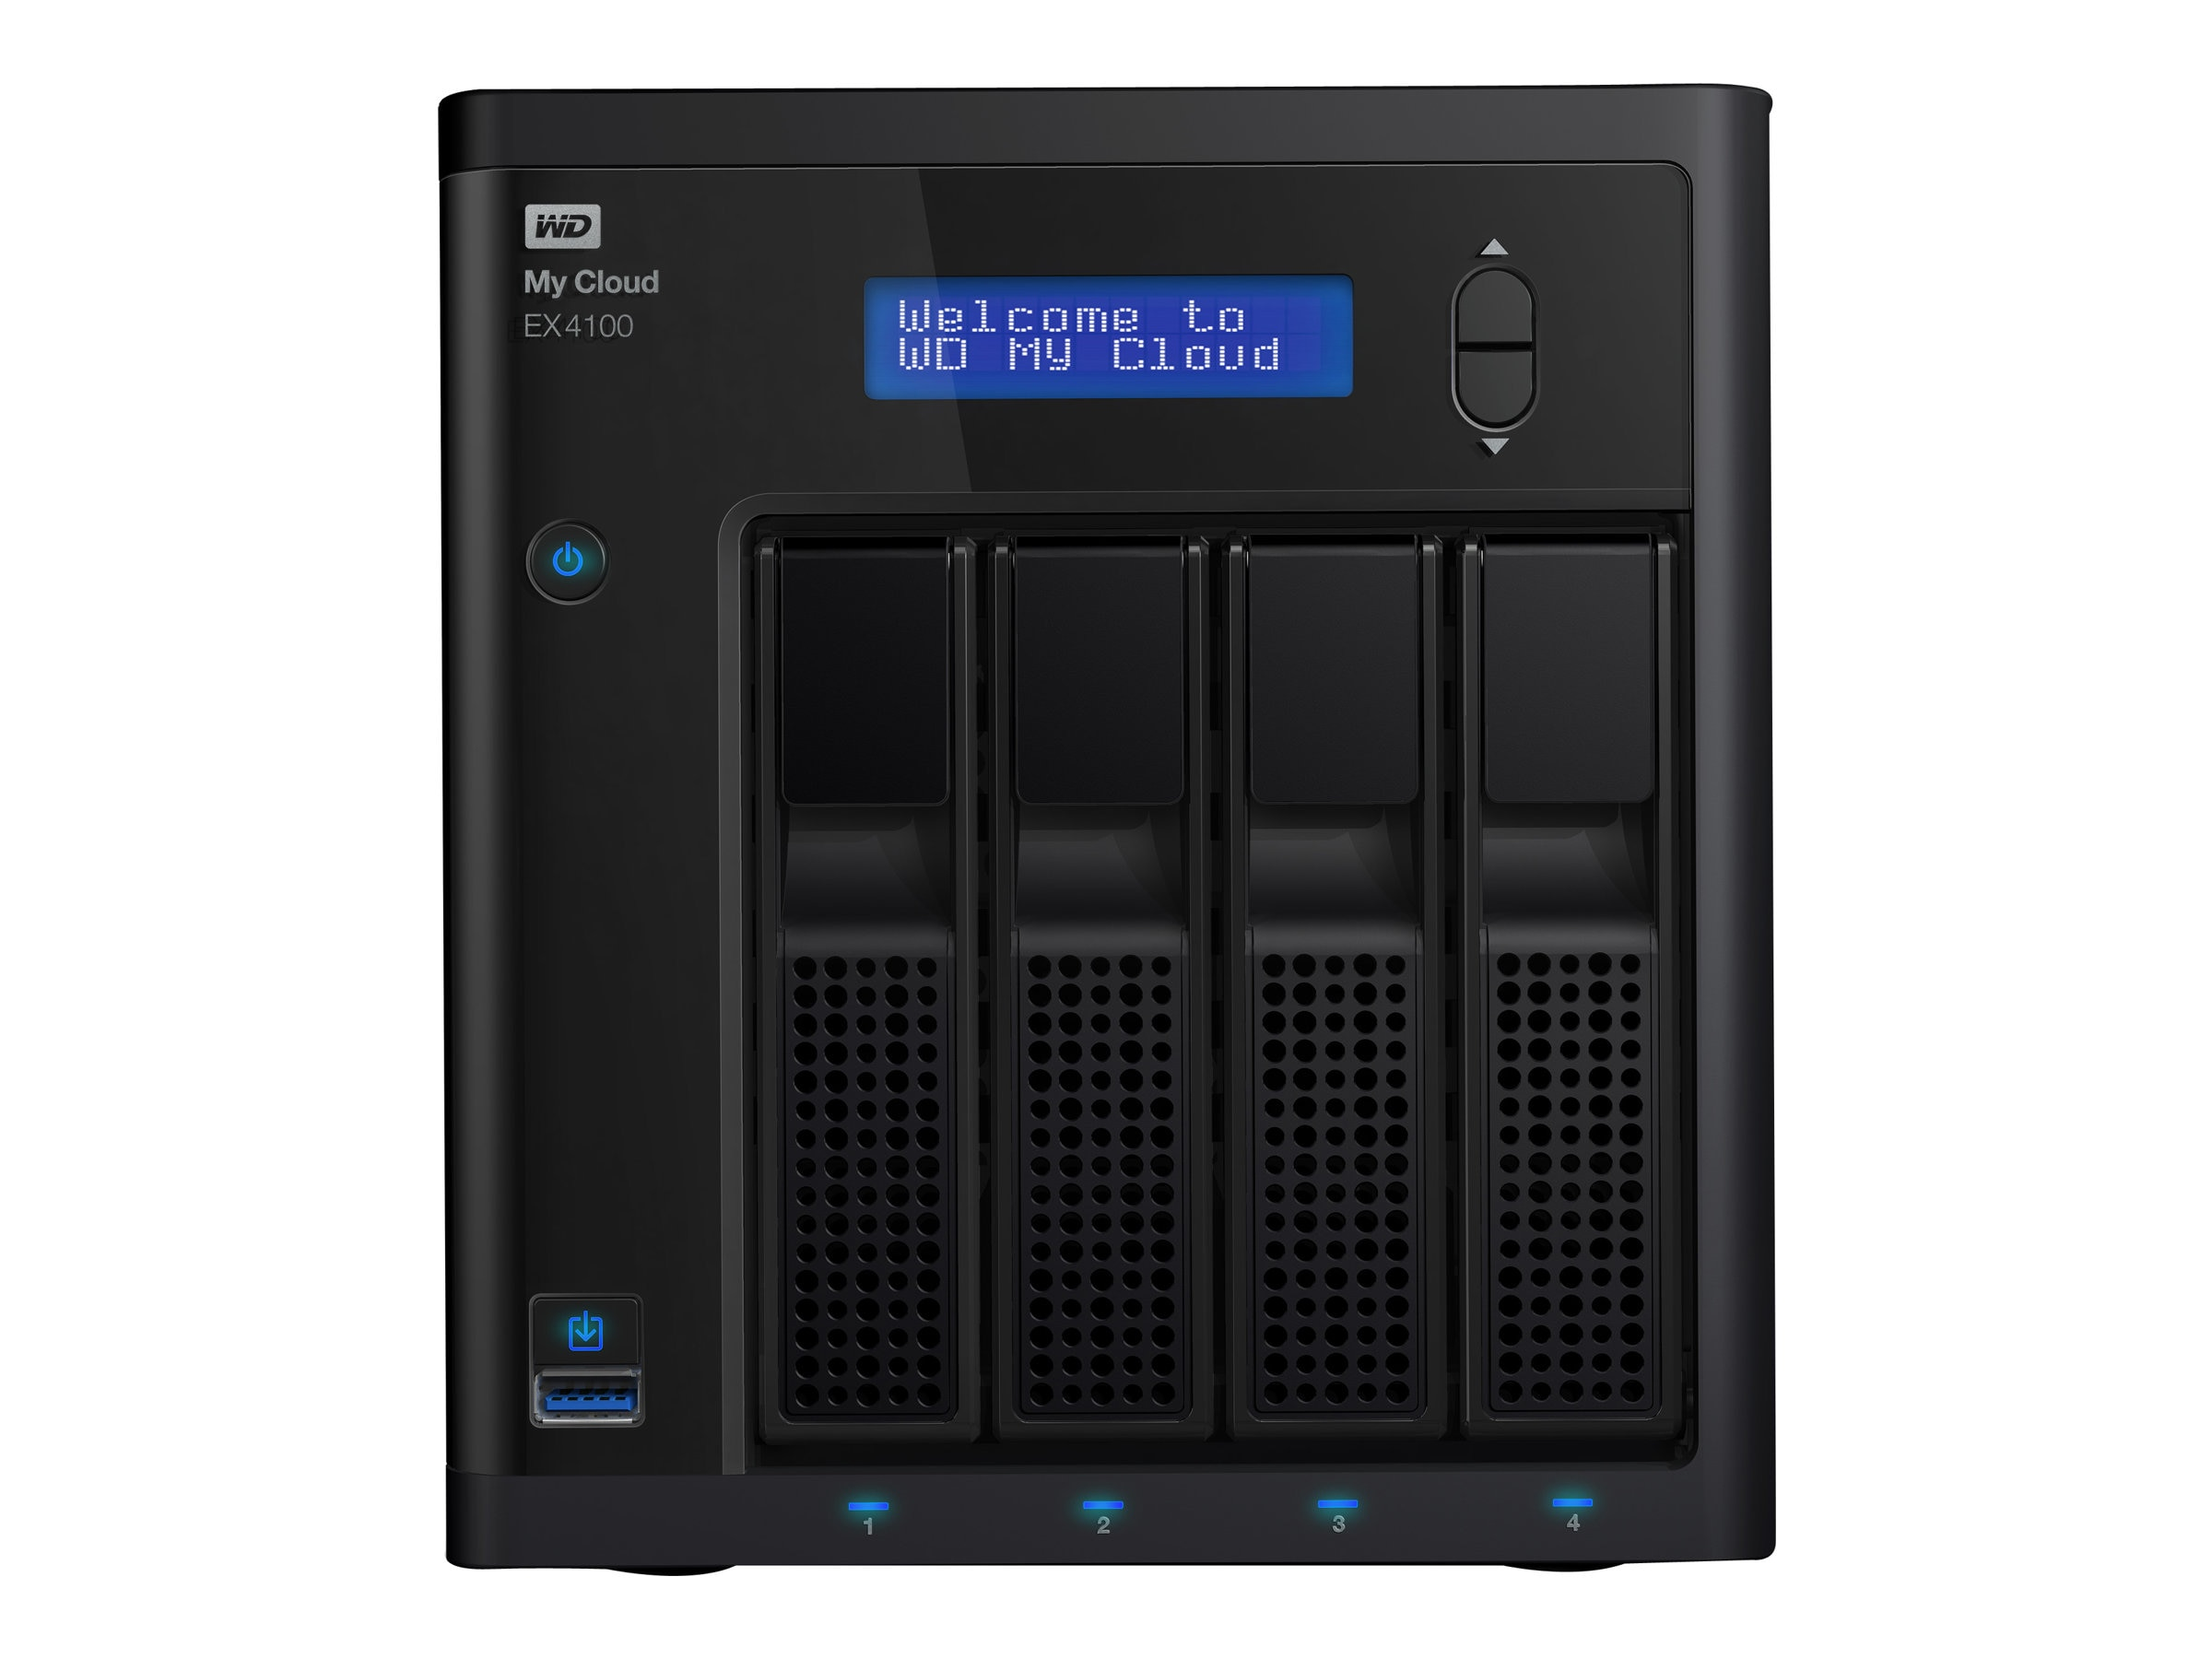 WD 16TB My Cloud EX4100 Network Attached Storage, WDBWZE0160KBK-NESN